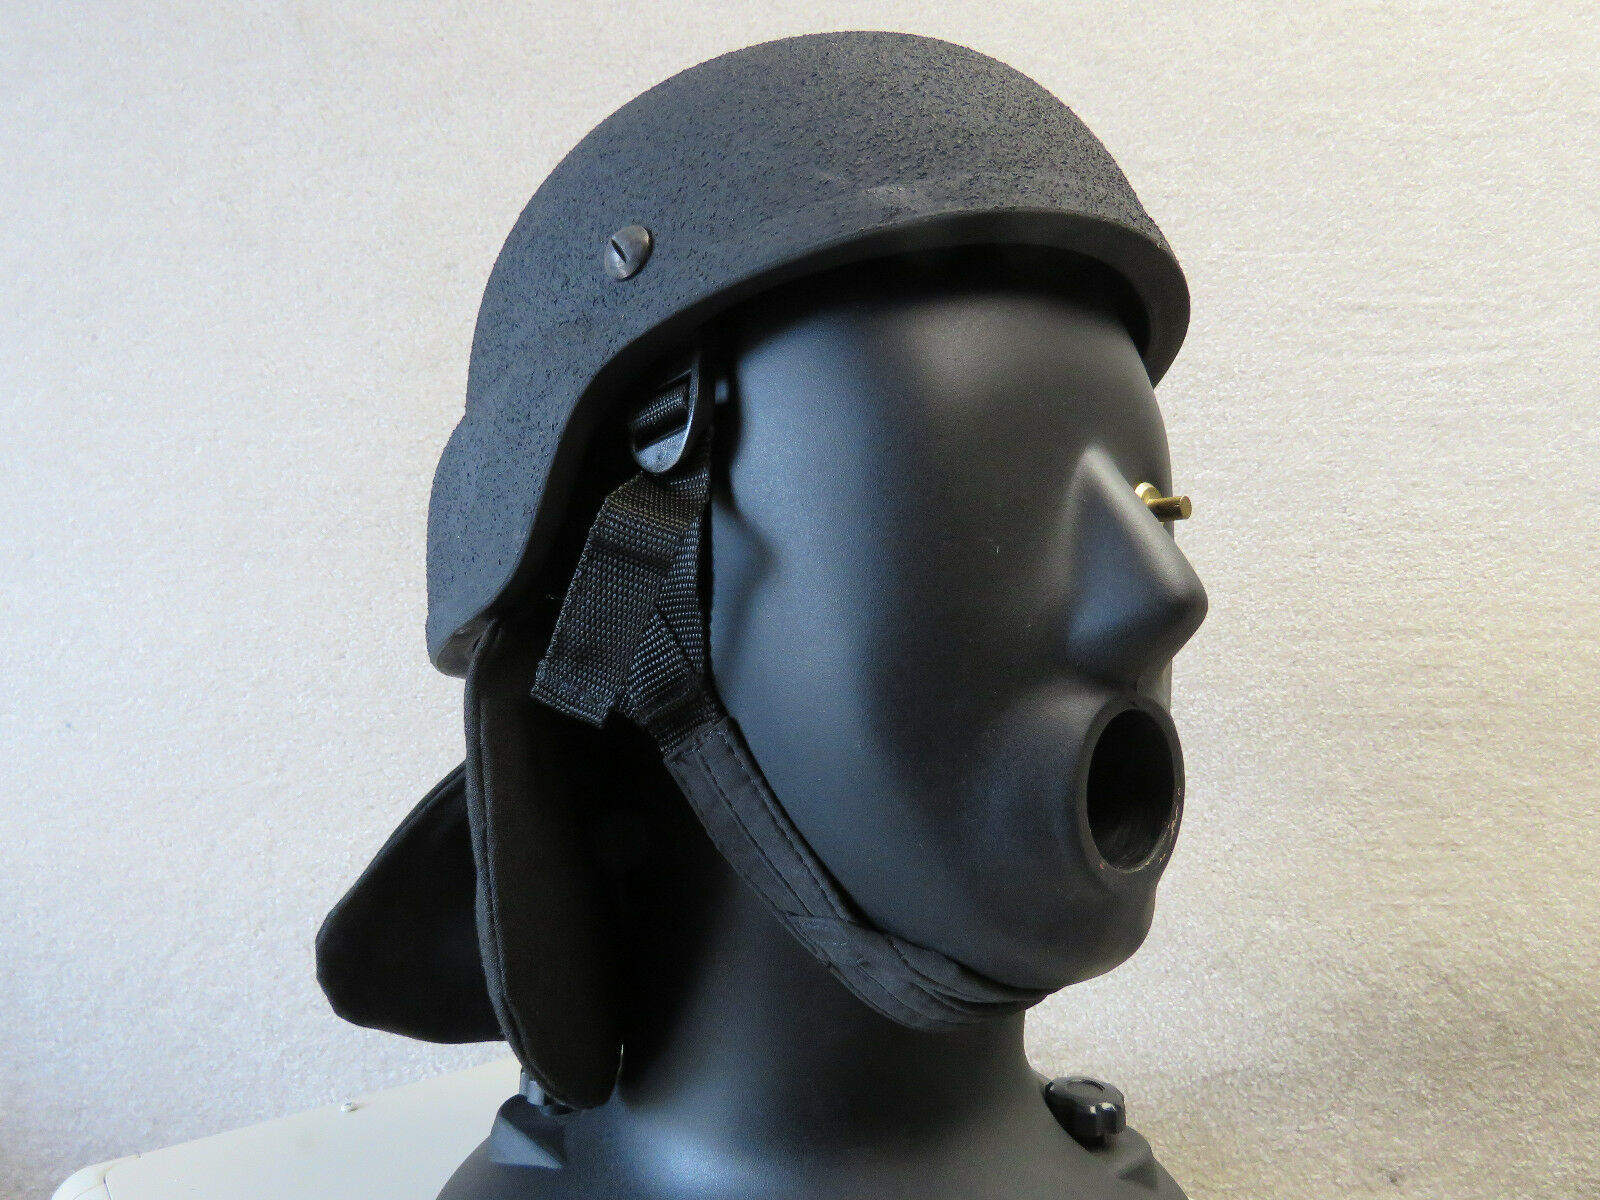 ProTech Tactical Delta 4 Armored  Ballistic Helmet Level IIIA - MEDIUM QTY AVAIL  first time reply